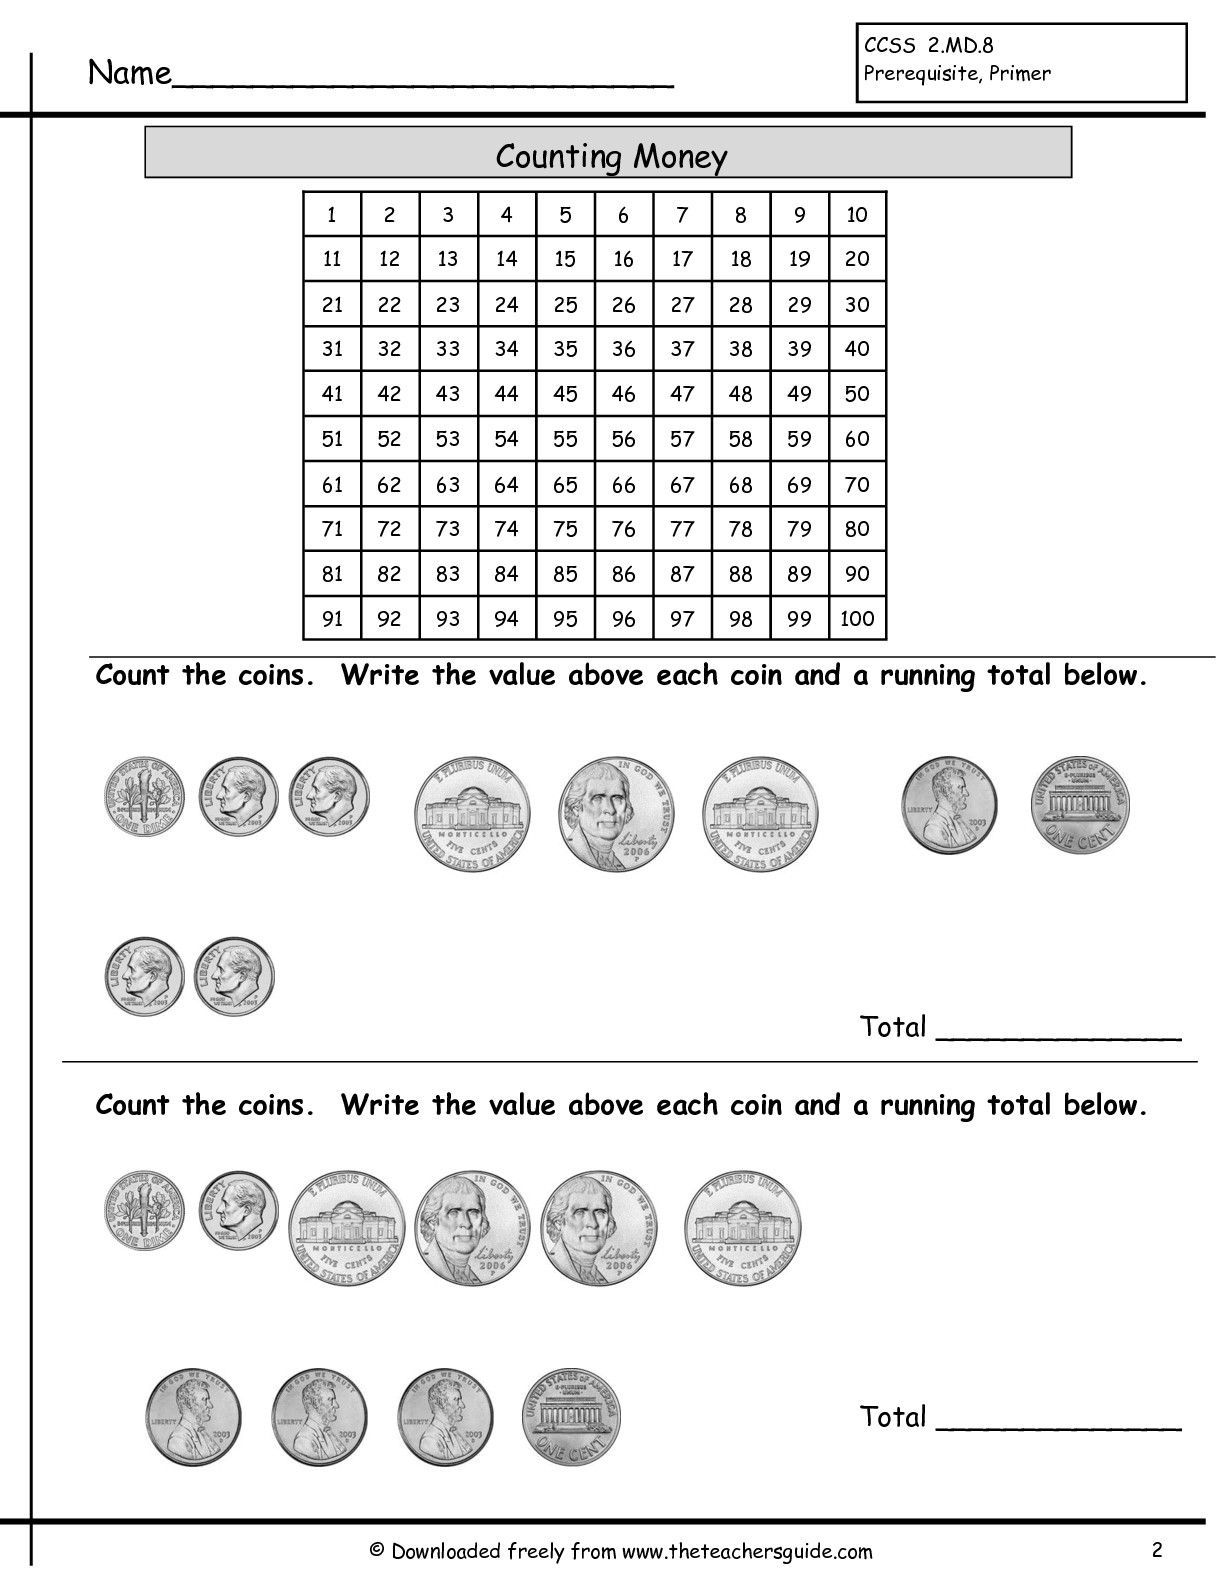 Counting Coins Worksheet Education Counting Coins